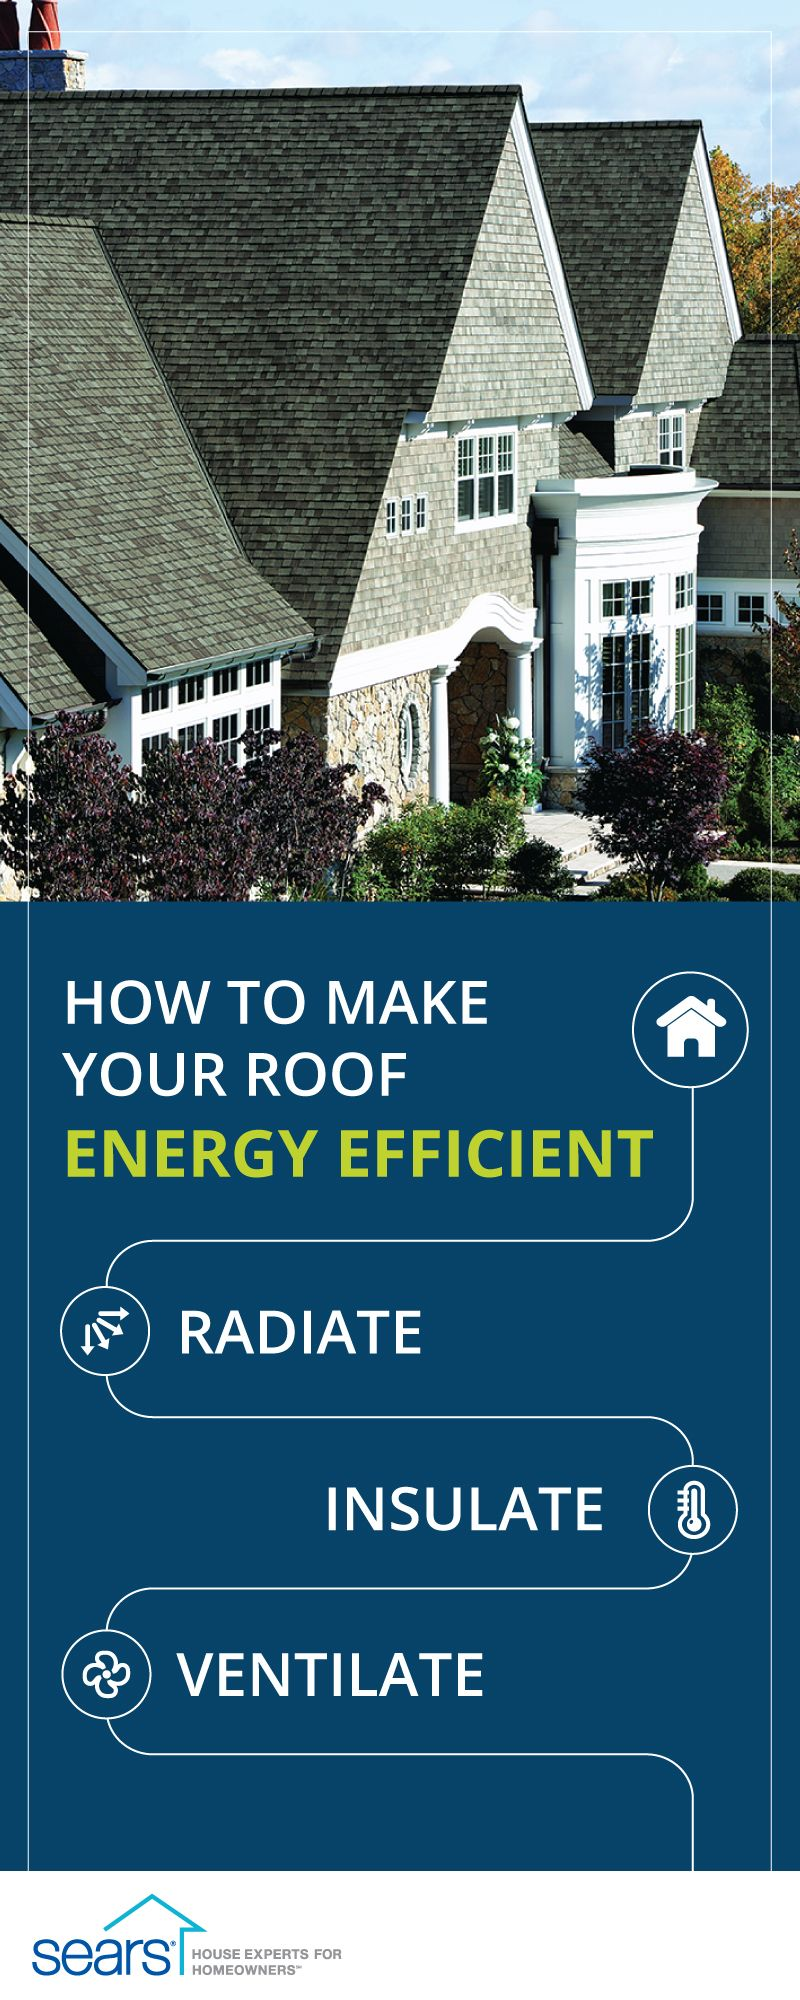 Energy Efficient Roofing Can Help Maintain Optimal Indoor Temperature Not To Mention Ke Energy Efficient Roofing How To Increase Energy Energy Efficient Homes